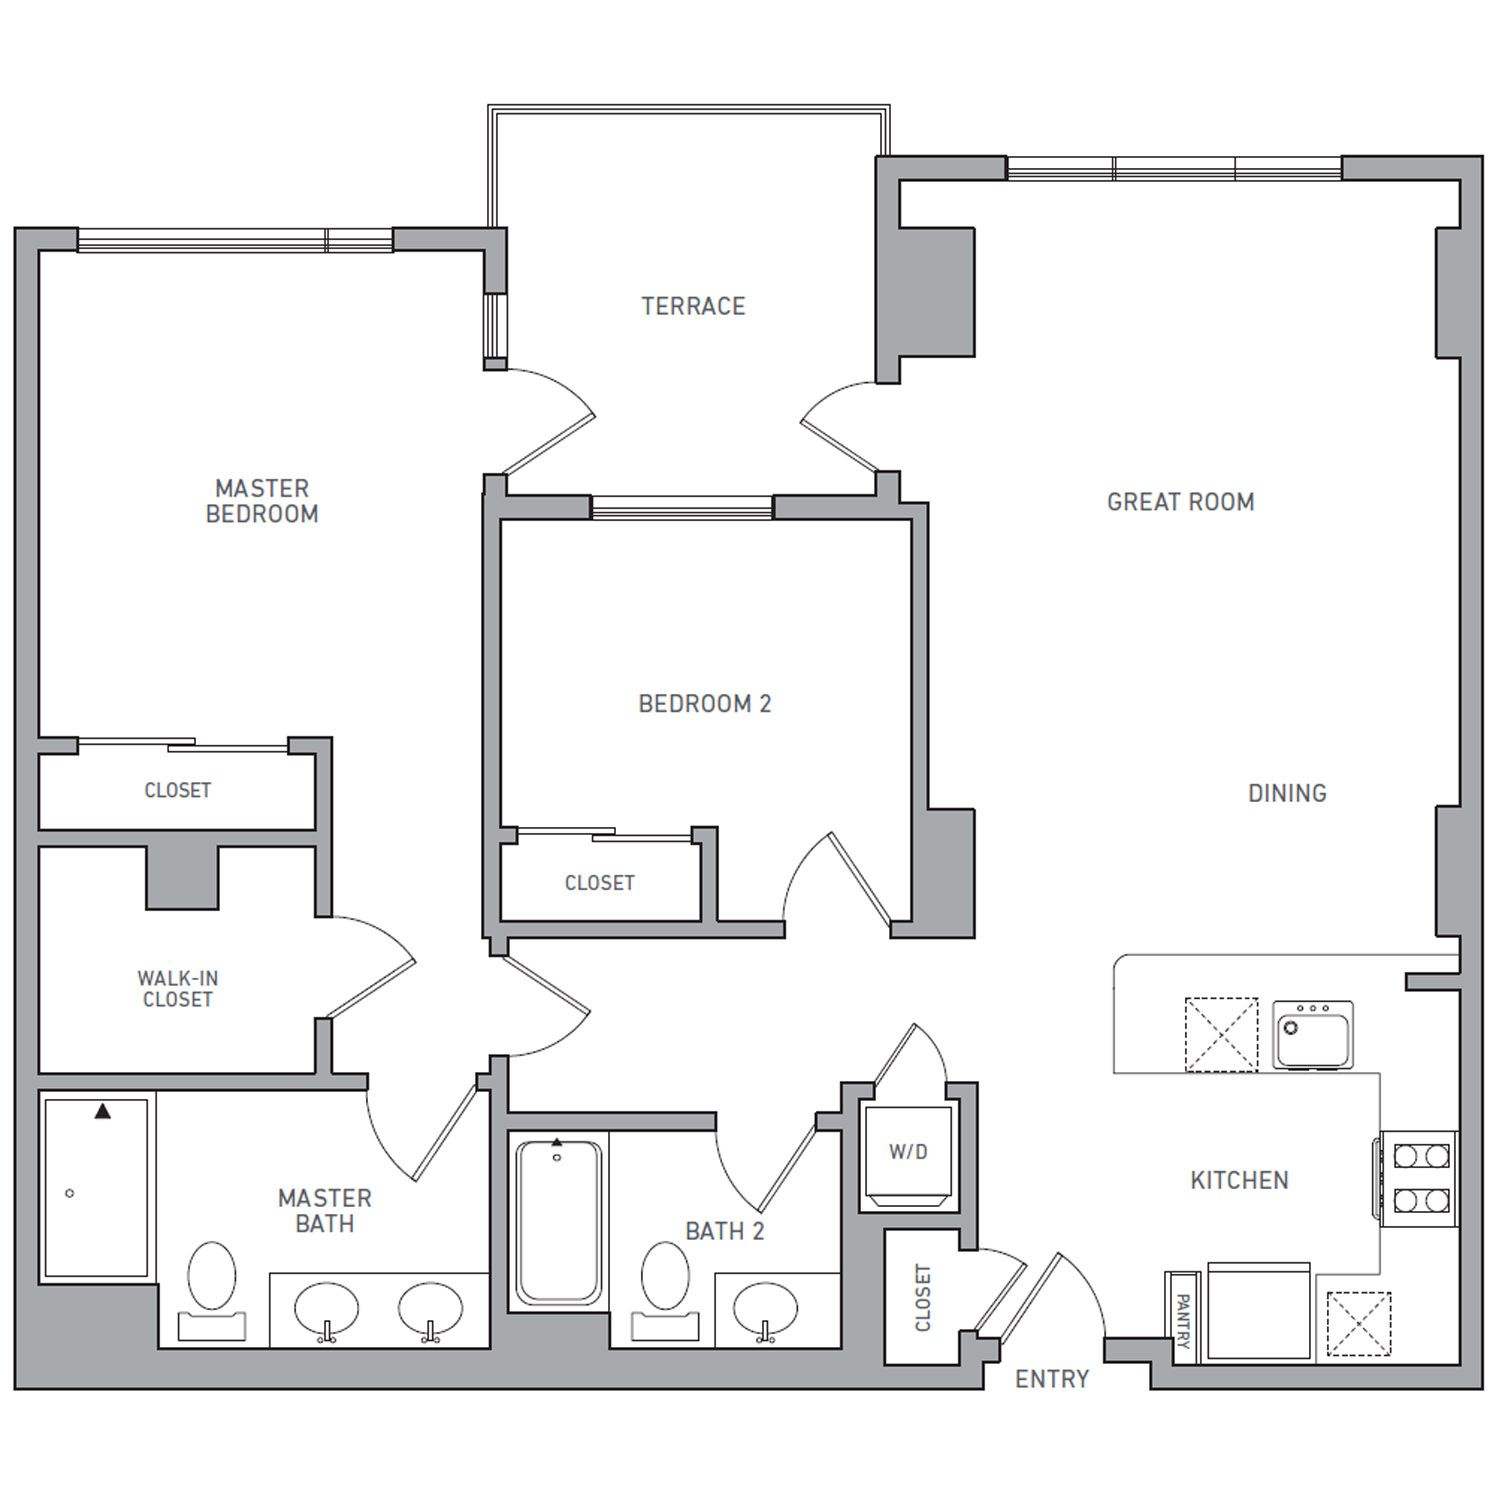 P H 202 floor plan diagram. Penthouse apartment with two bedrooms, two bathrooms, an open kitchen dining and living area, a terrace, and a washer dryer.